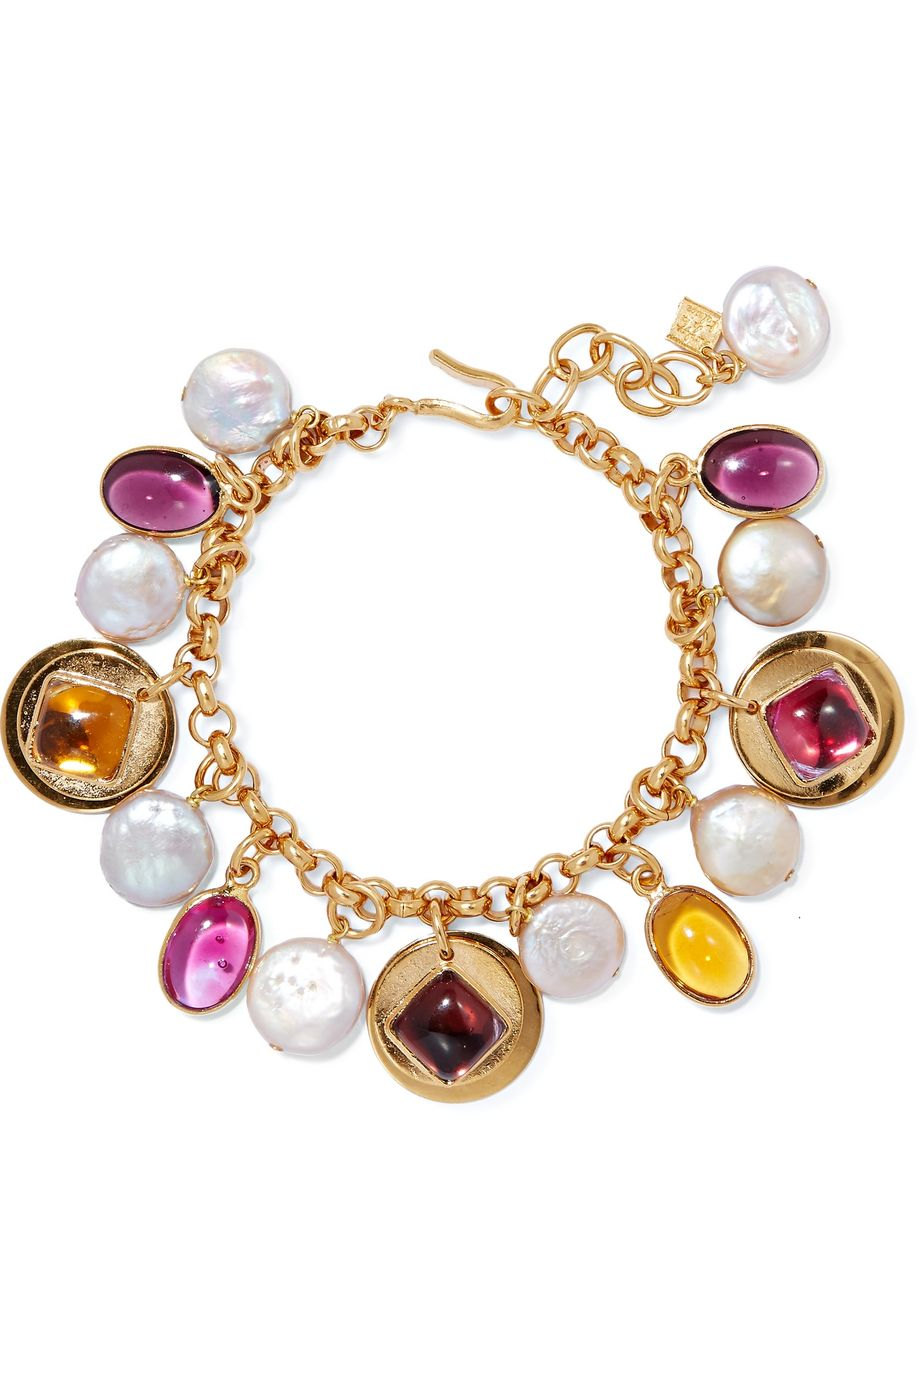 unknown Gold-plated, glass and pearl bracelet